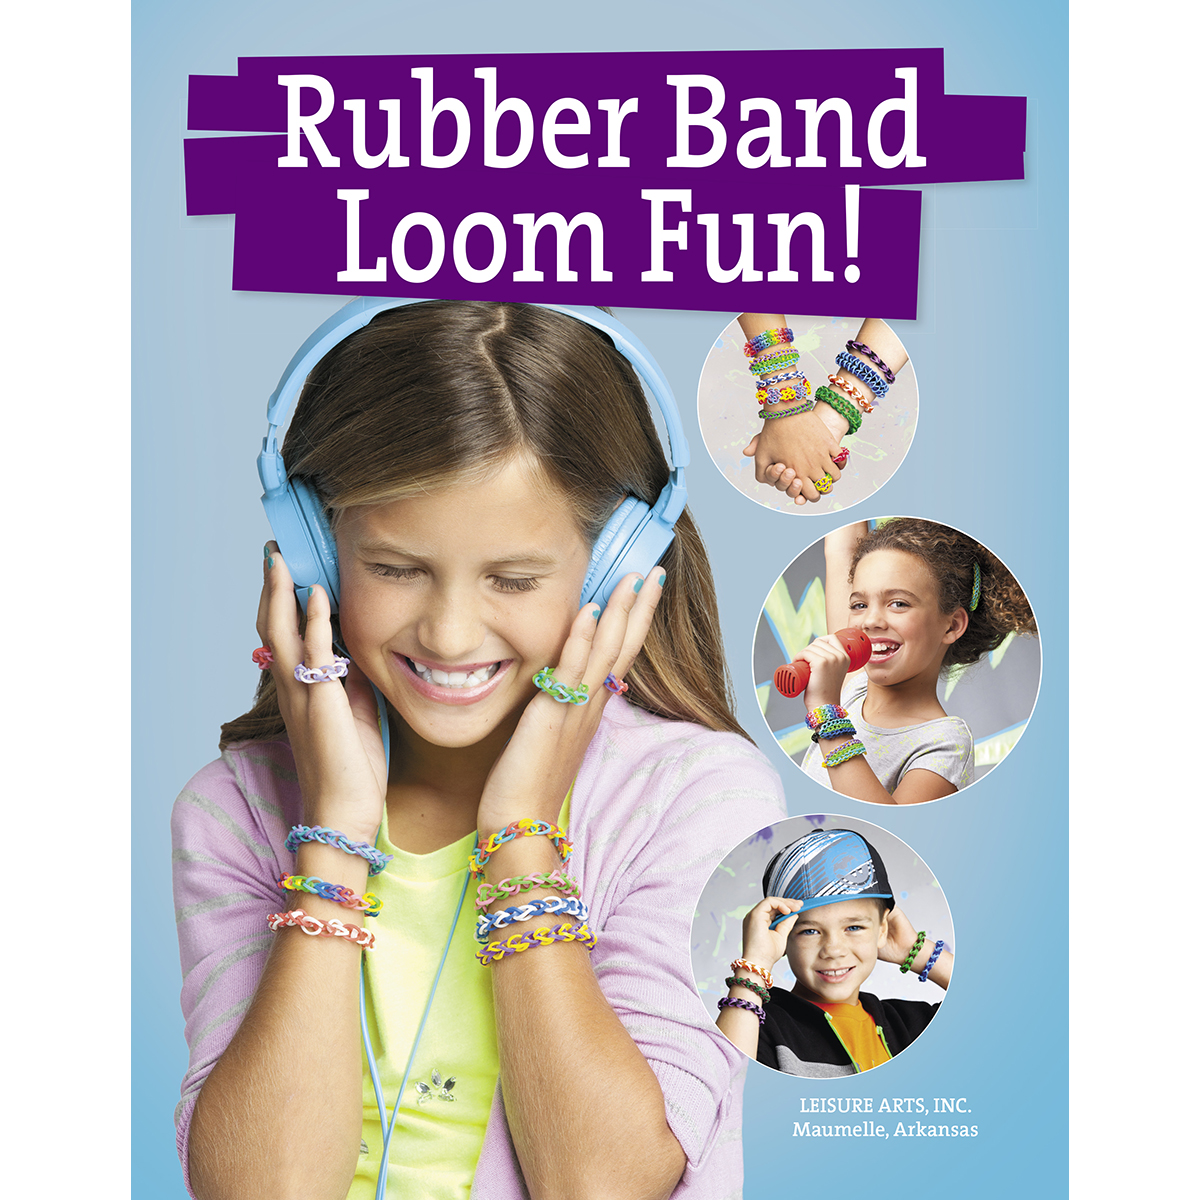 Leisure Arts-Rubber Band Loom Fun